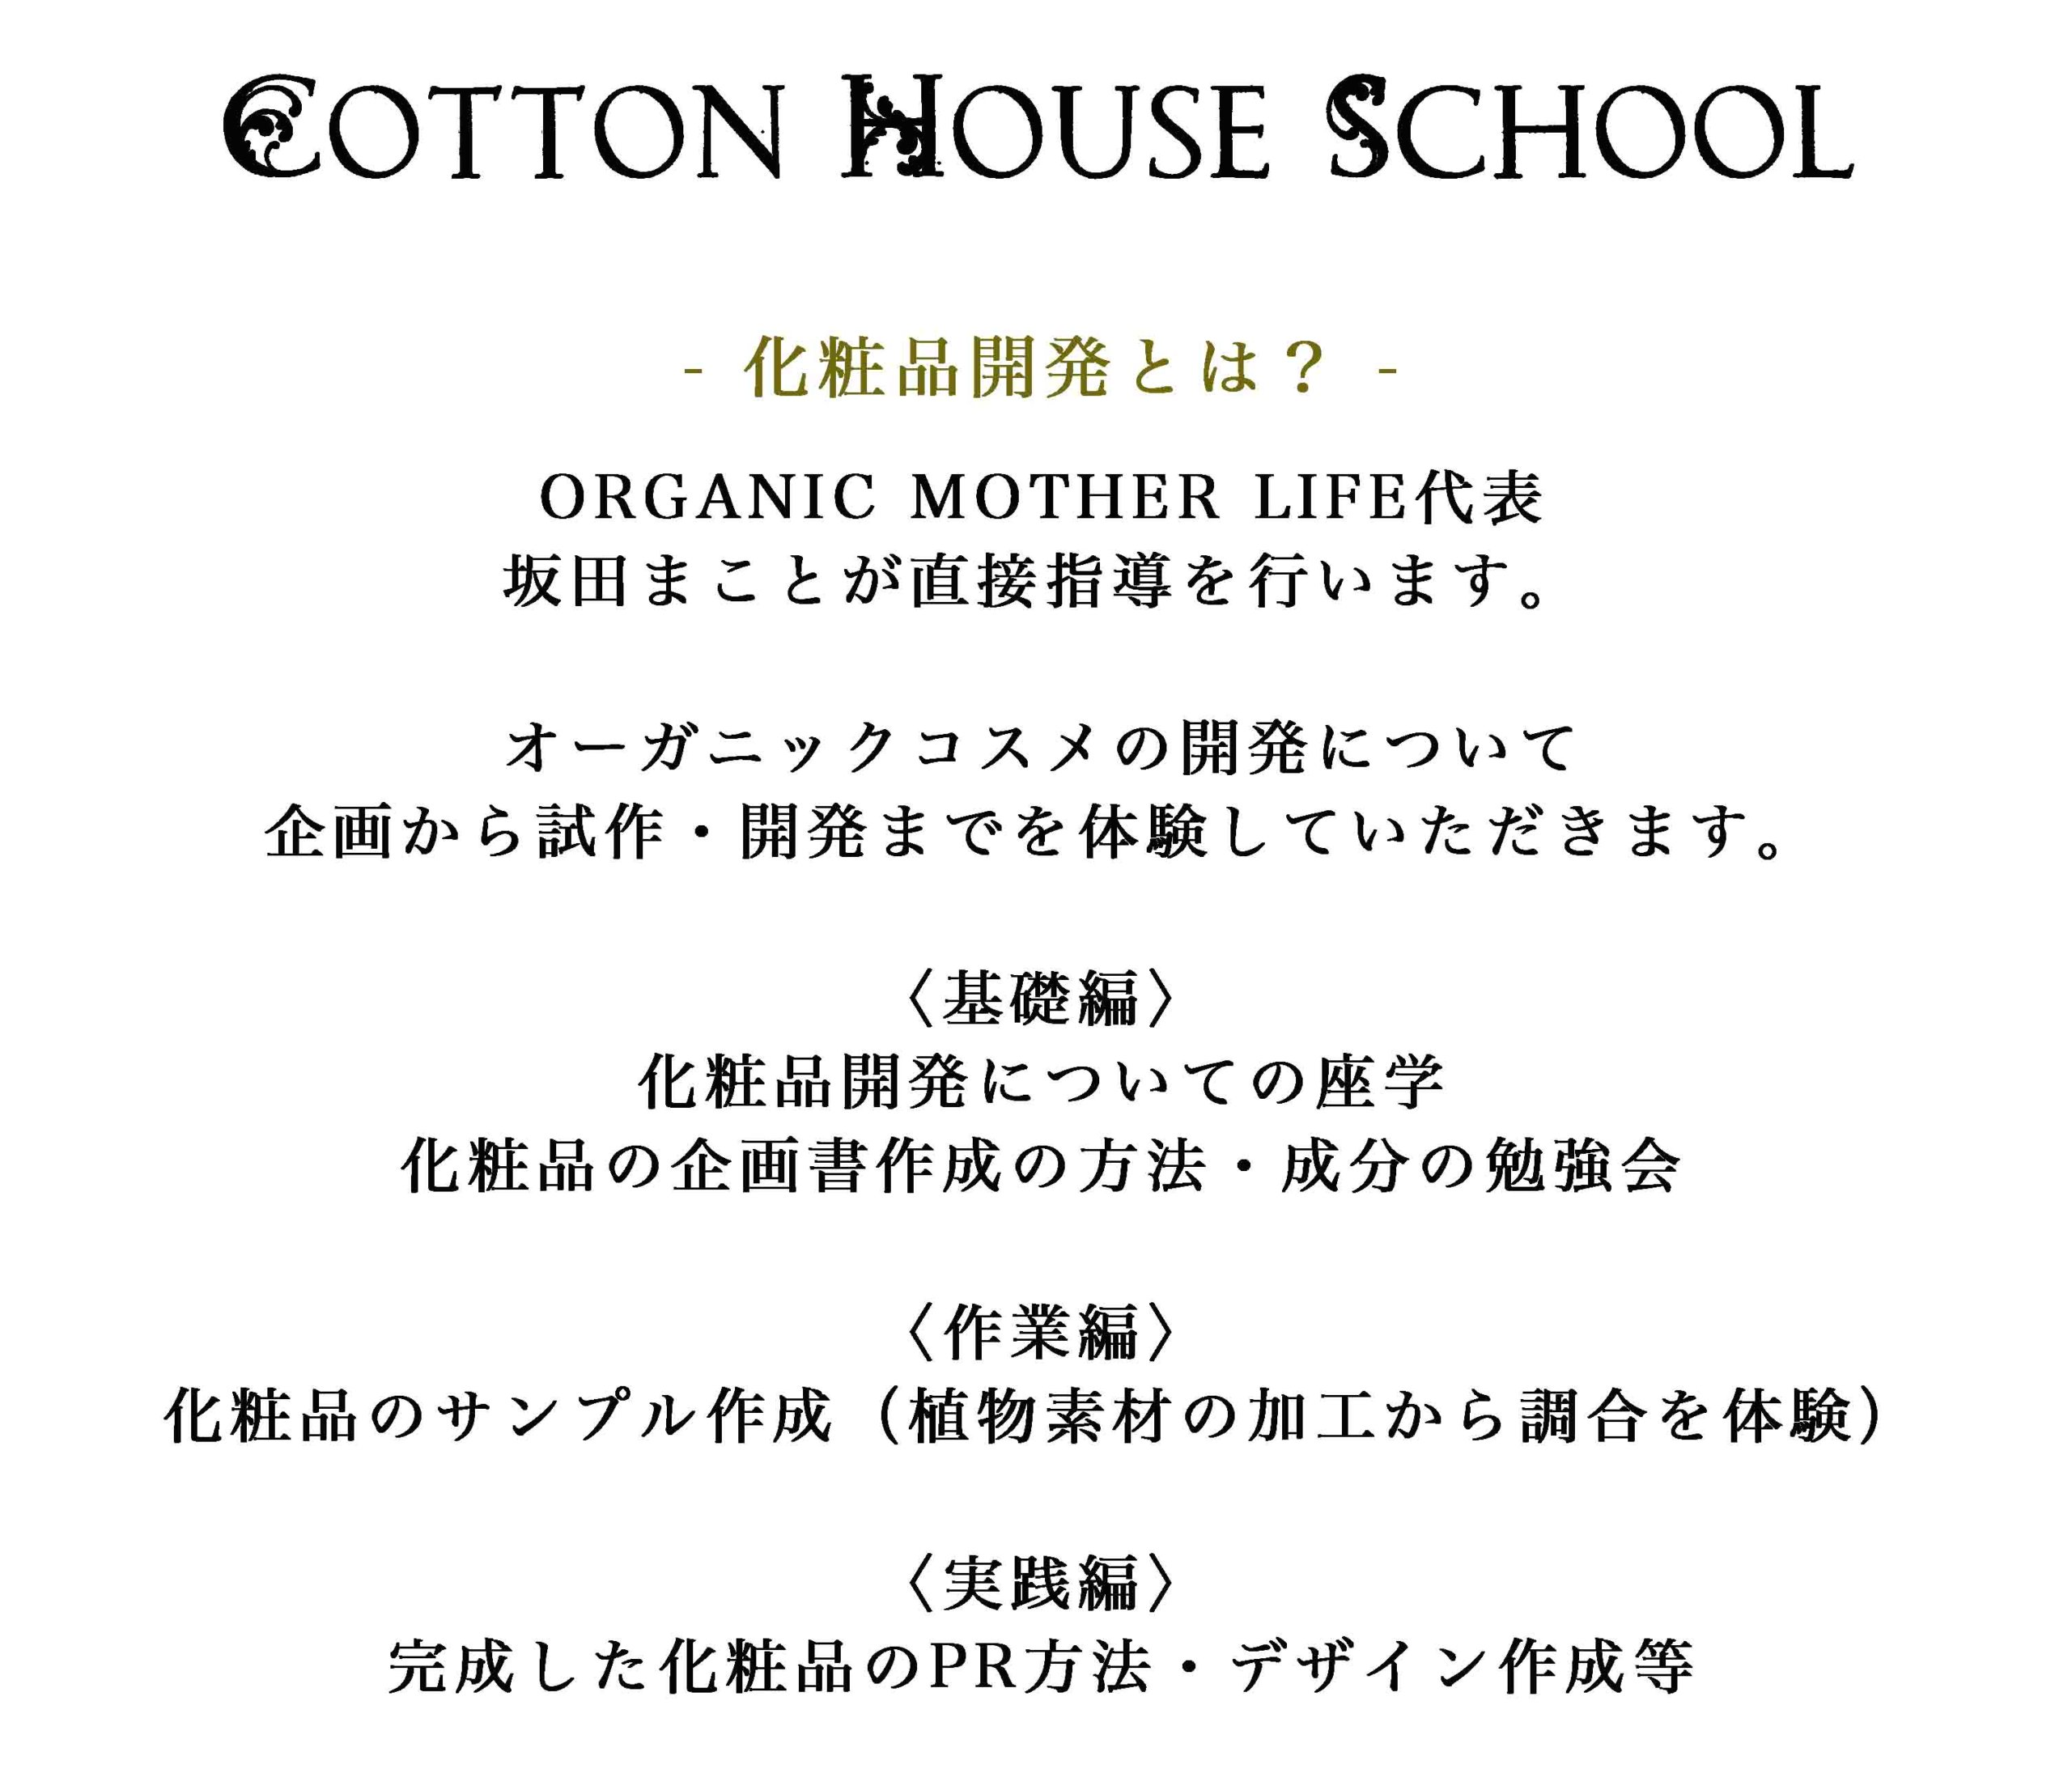 5Cotton House School